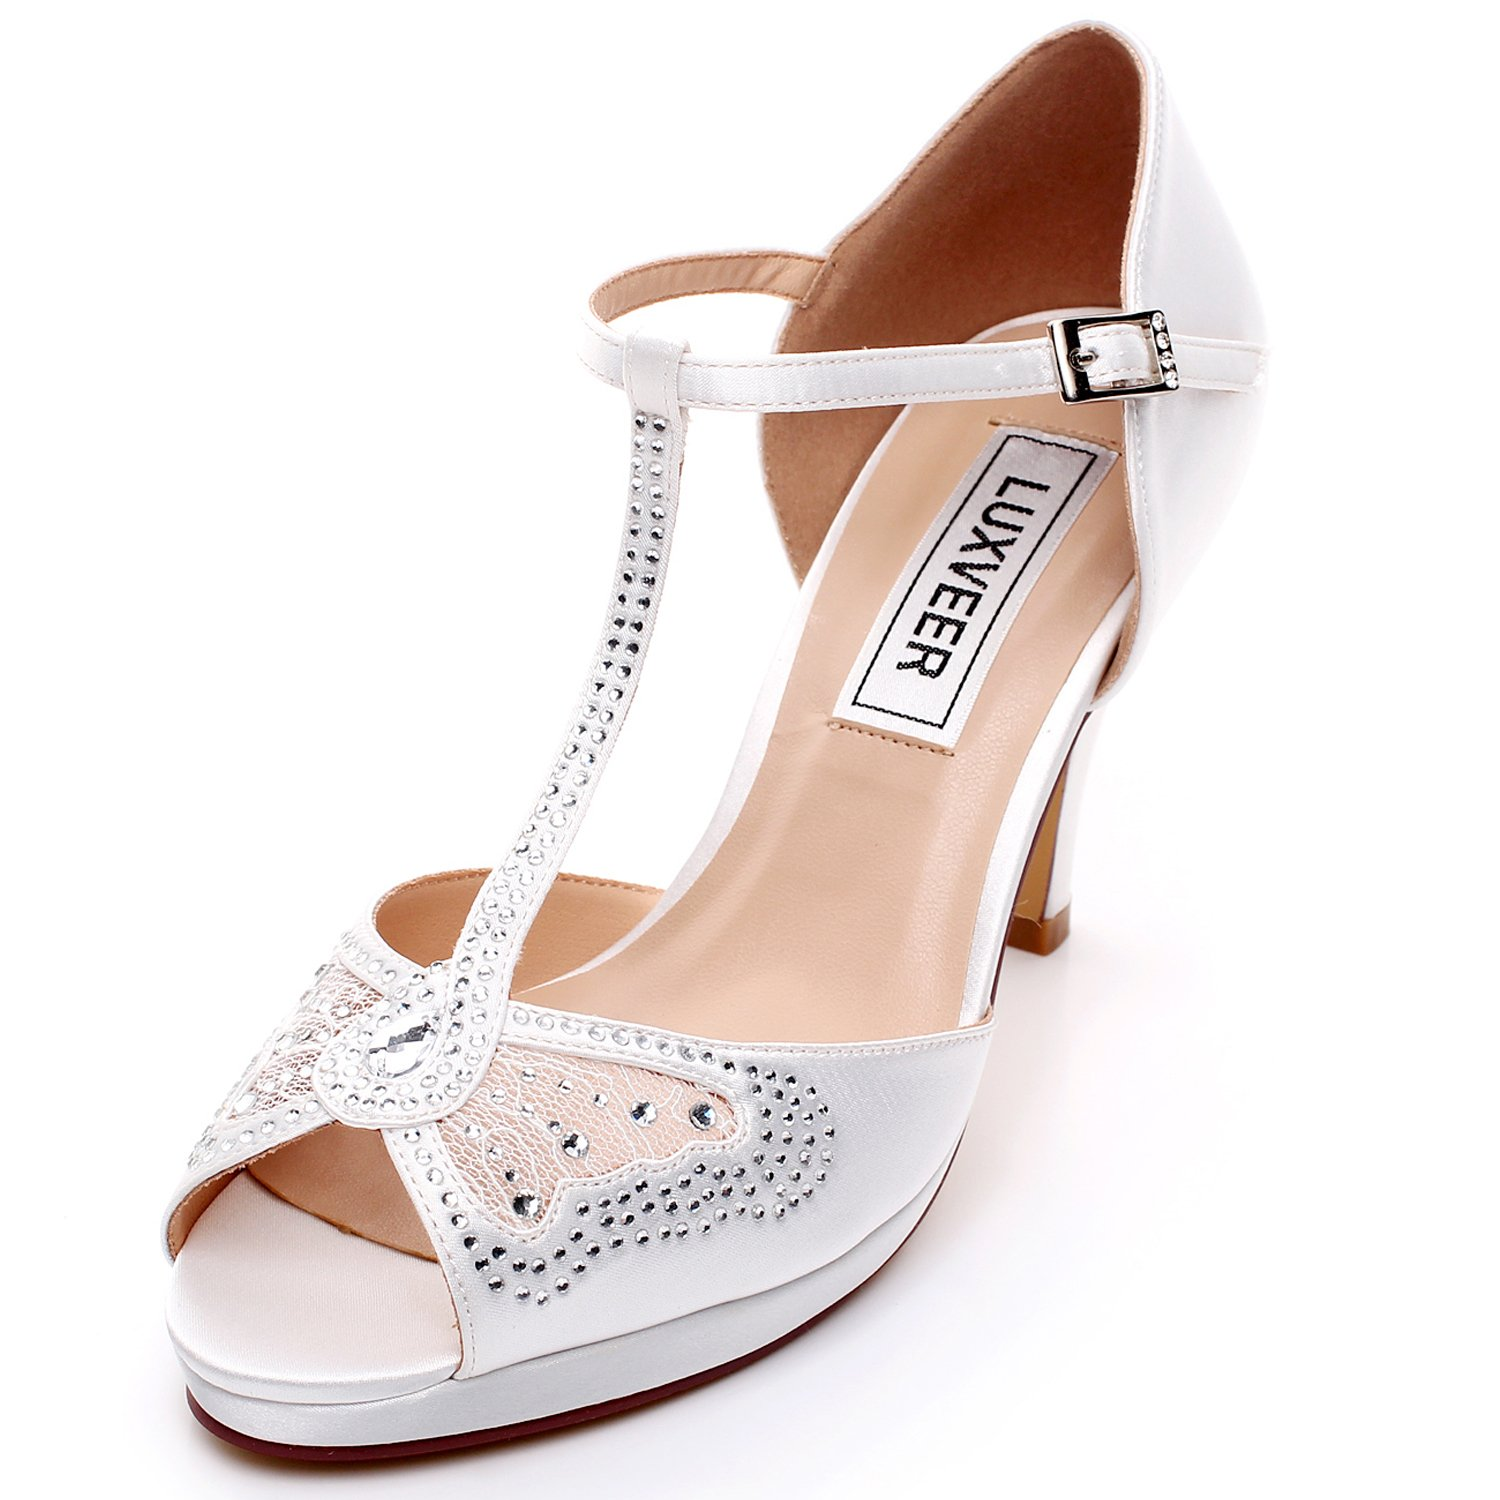 1940s Style Wedding Dresses | Classic Wedding Dresses LUXVEER Women Wedding Sandals with Silver Rhinestone and Lace Butterfly - Heels 3.5inch $58.97 AT vintagedancer.com